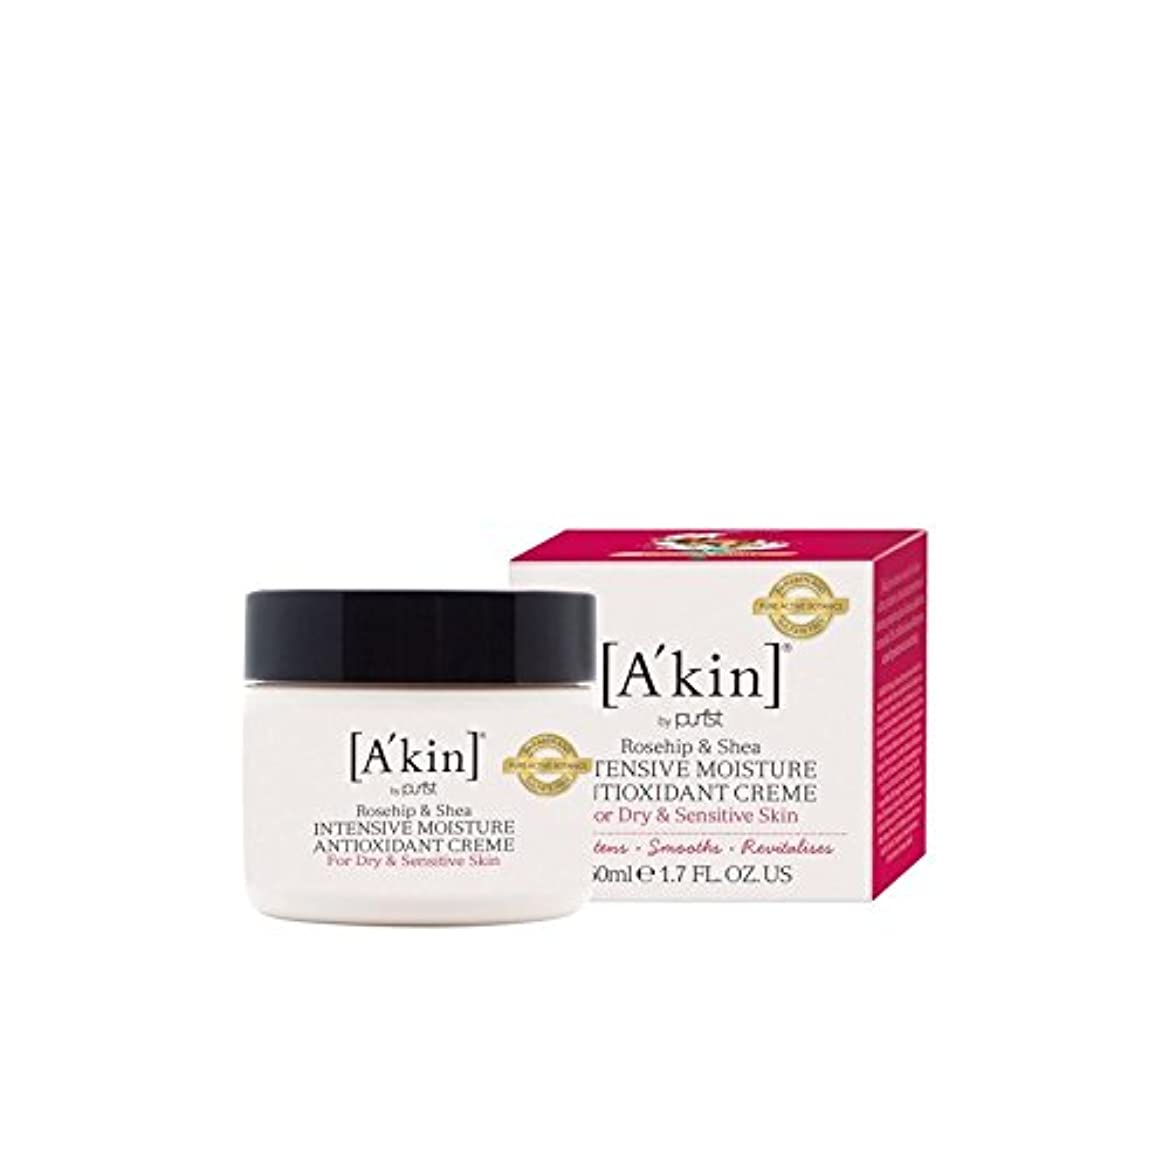 A'Kin Rosehip & Shea Intensive Moisture Anti-Oxidant Complex (50ml) (Pack of 6) - のローズヒップ&シアバター集中的な水分抗酸化コンプレックス...